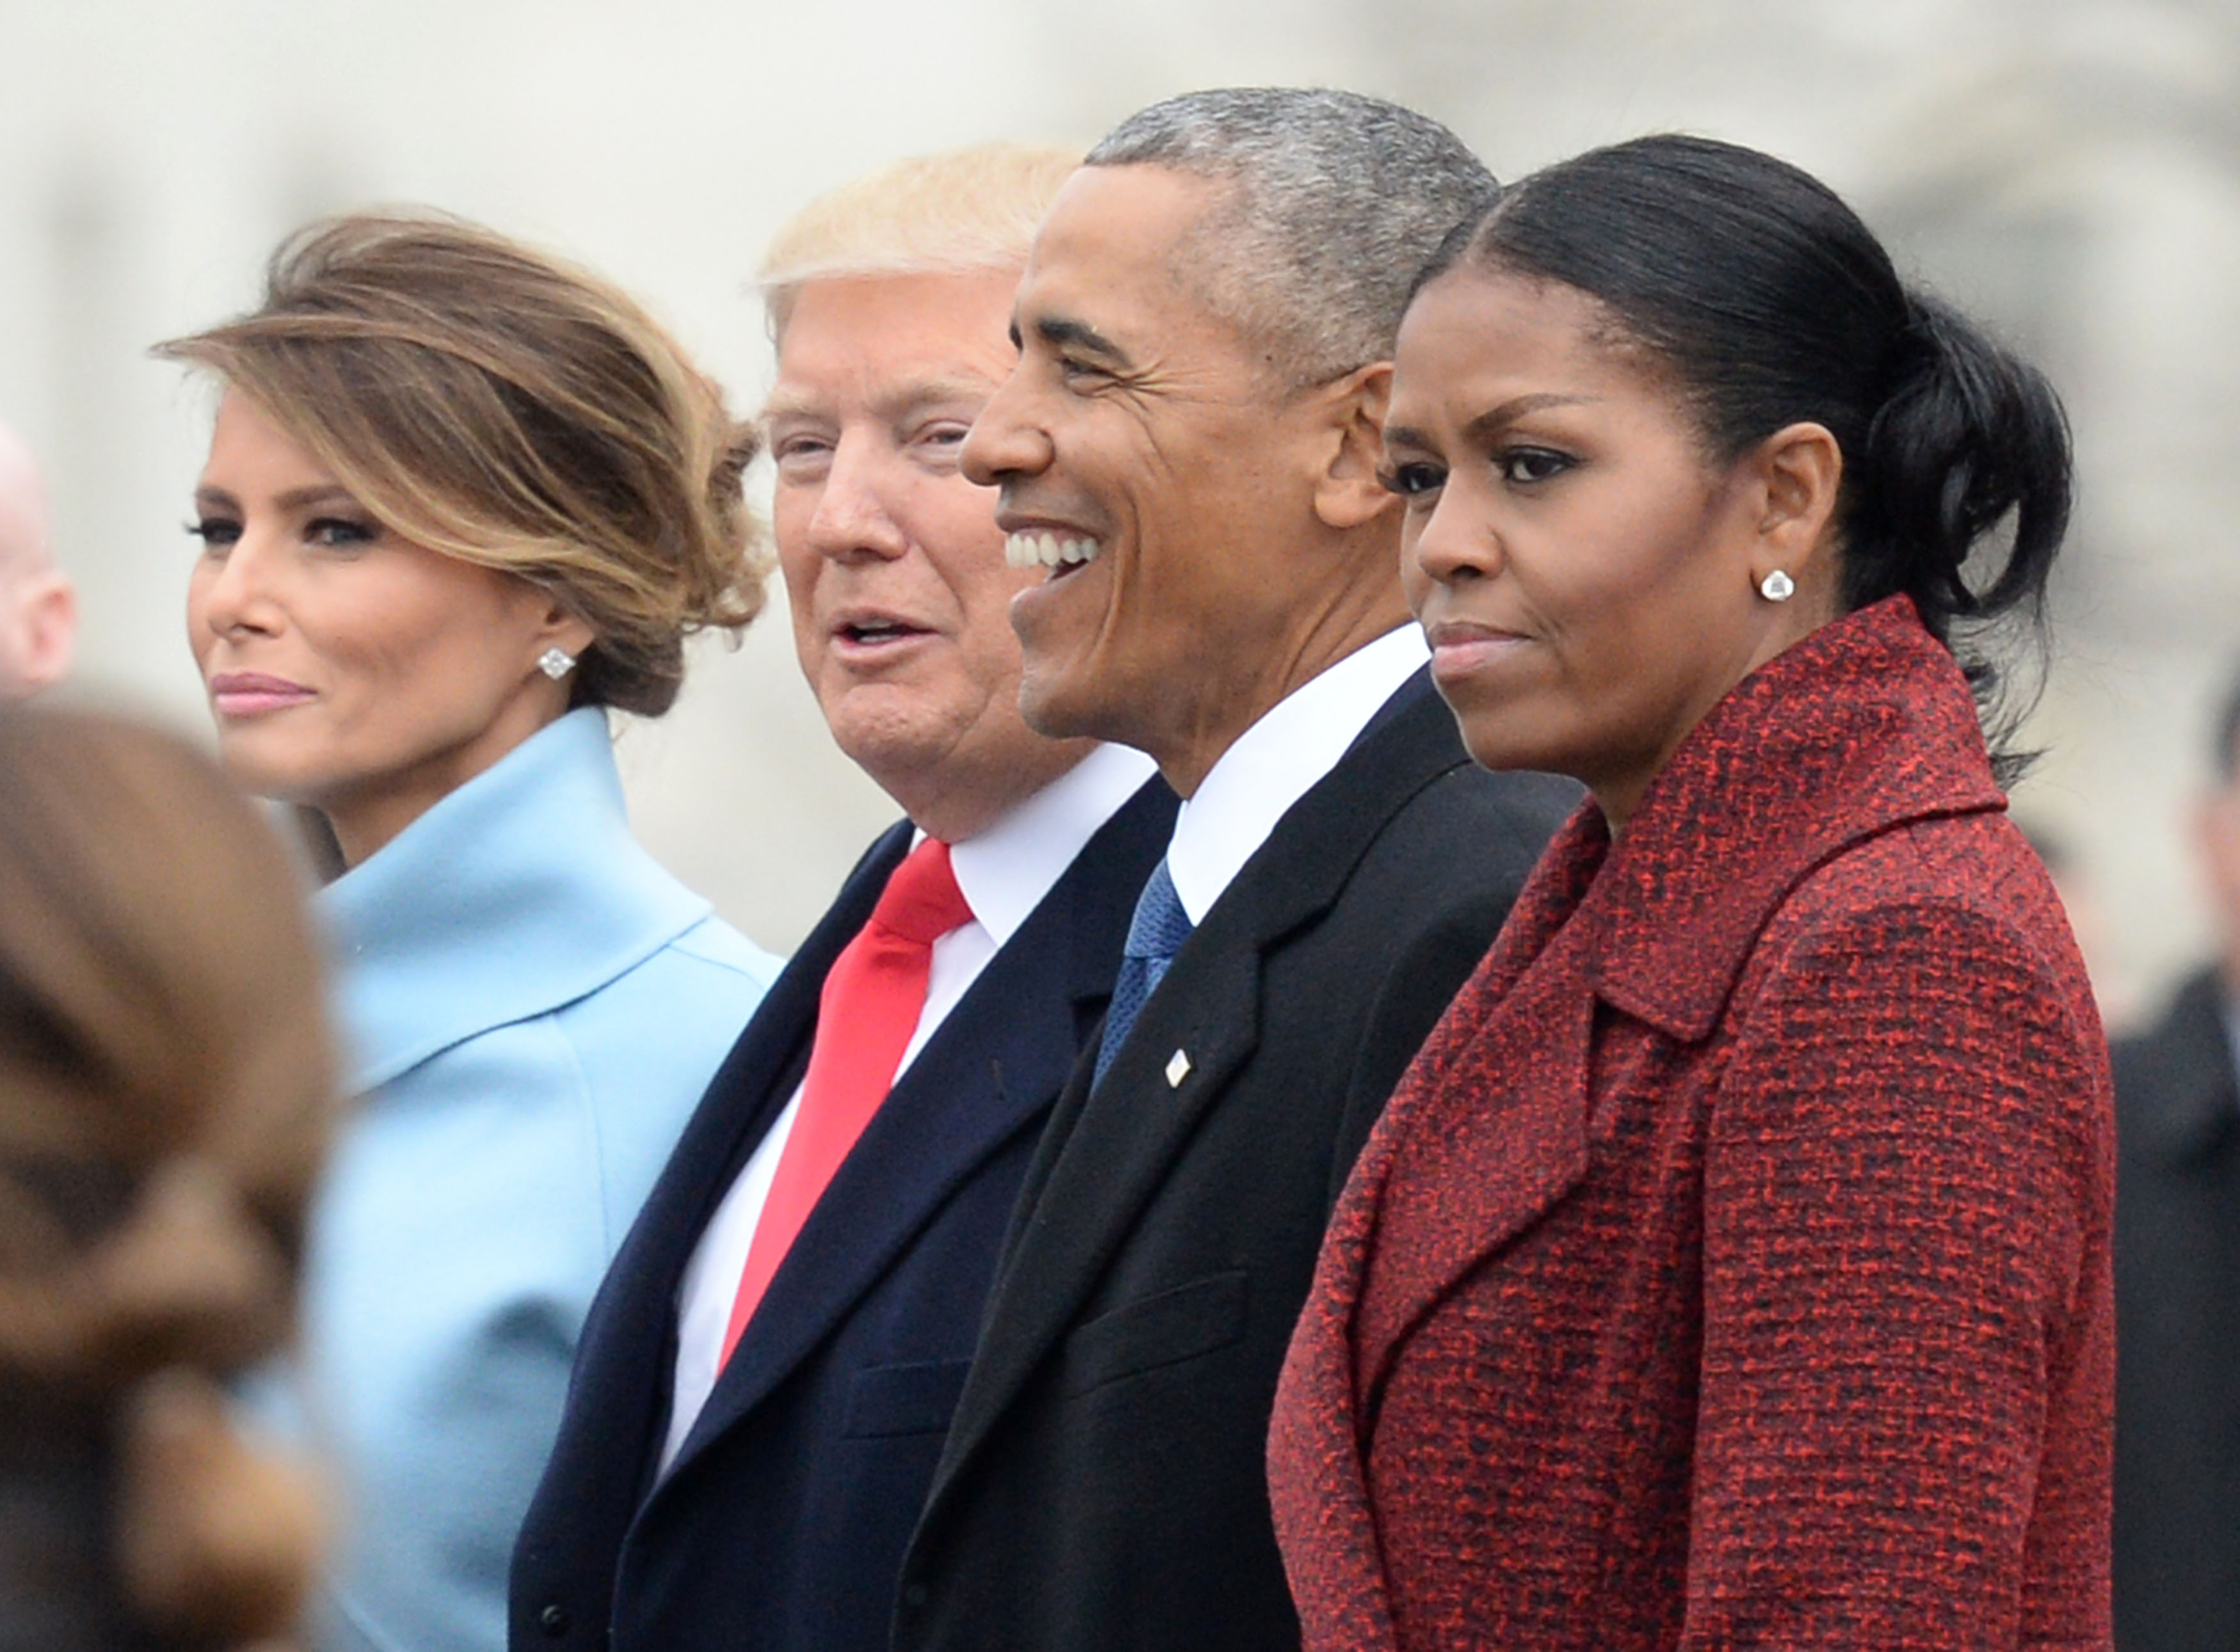 Michelle Obama Explains Her Look at Trump's Inauguration | Time